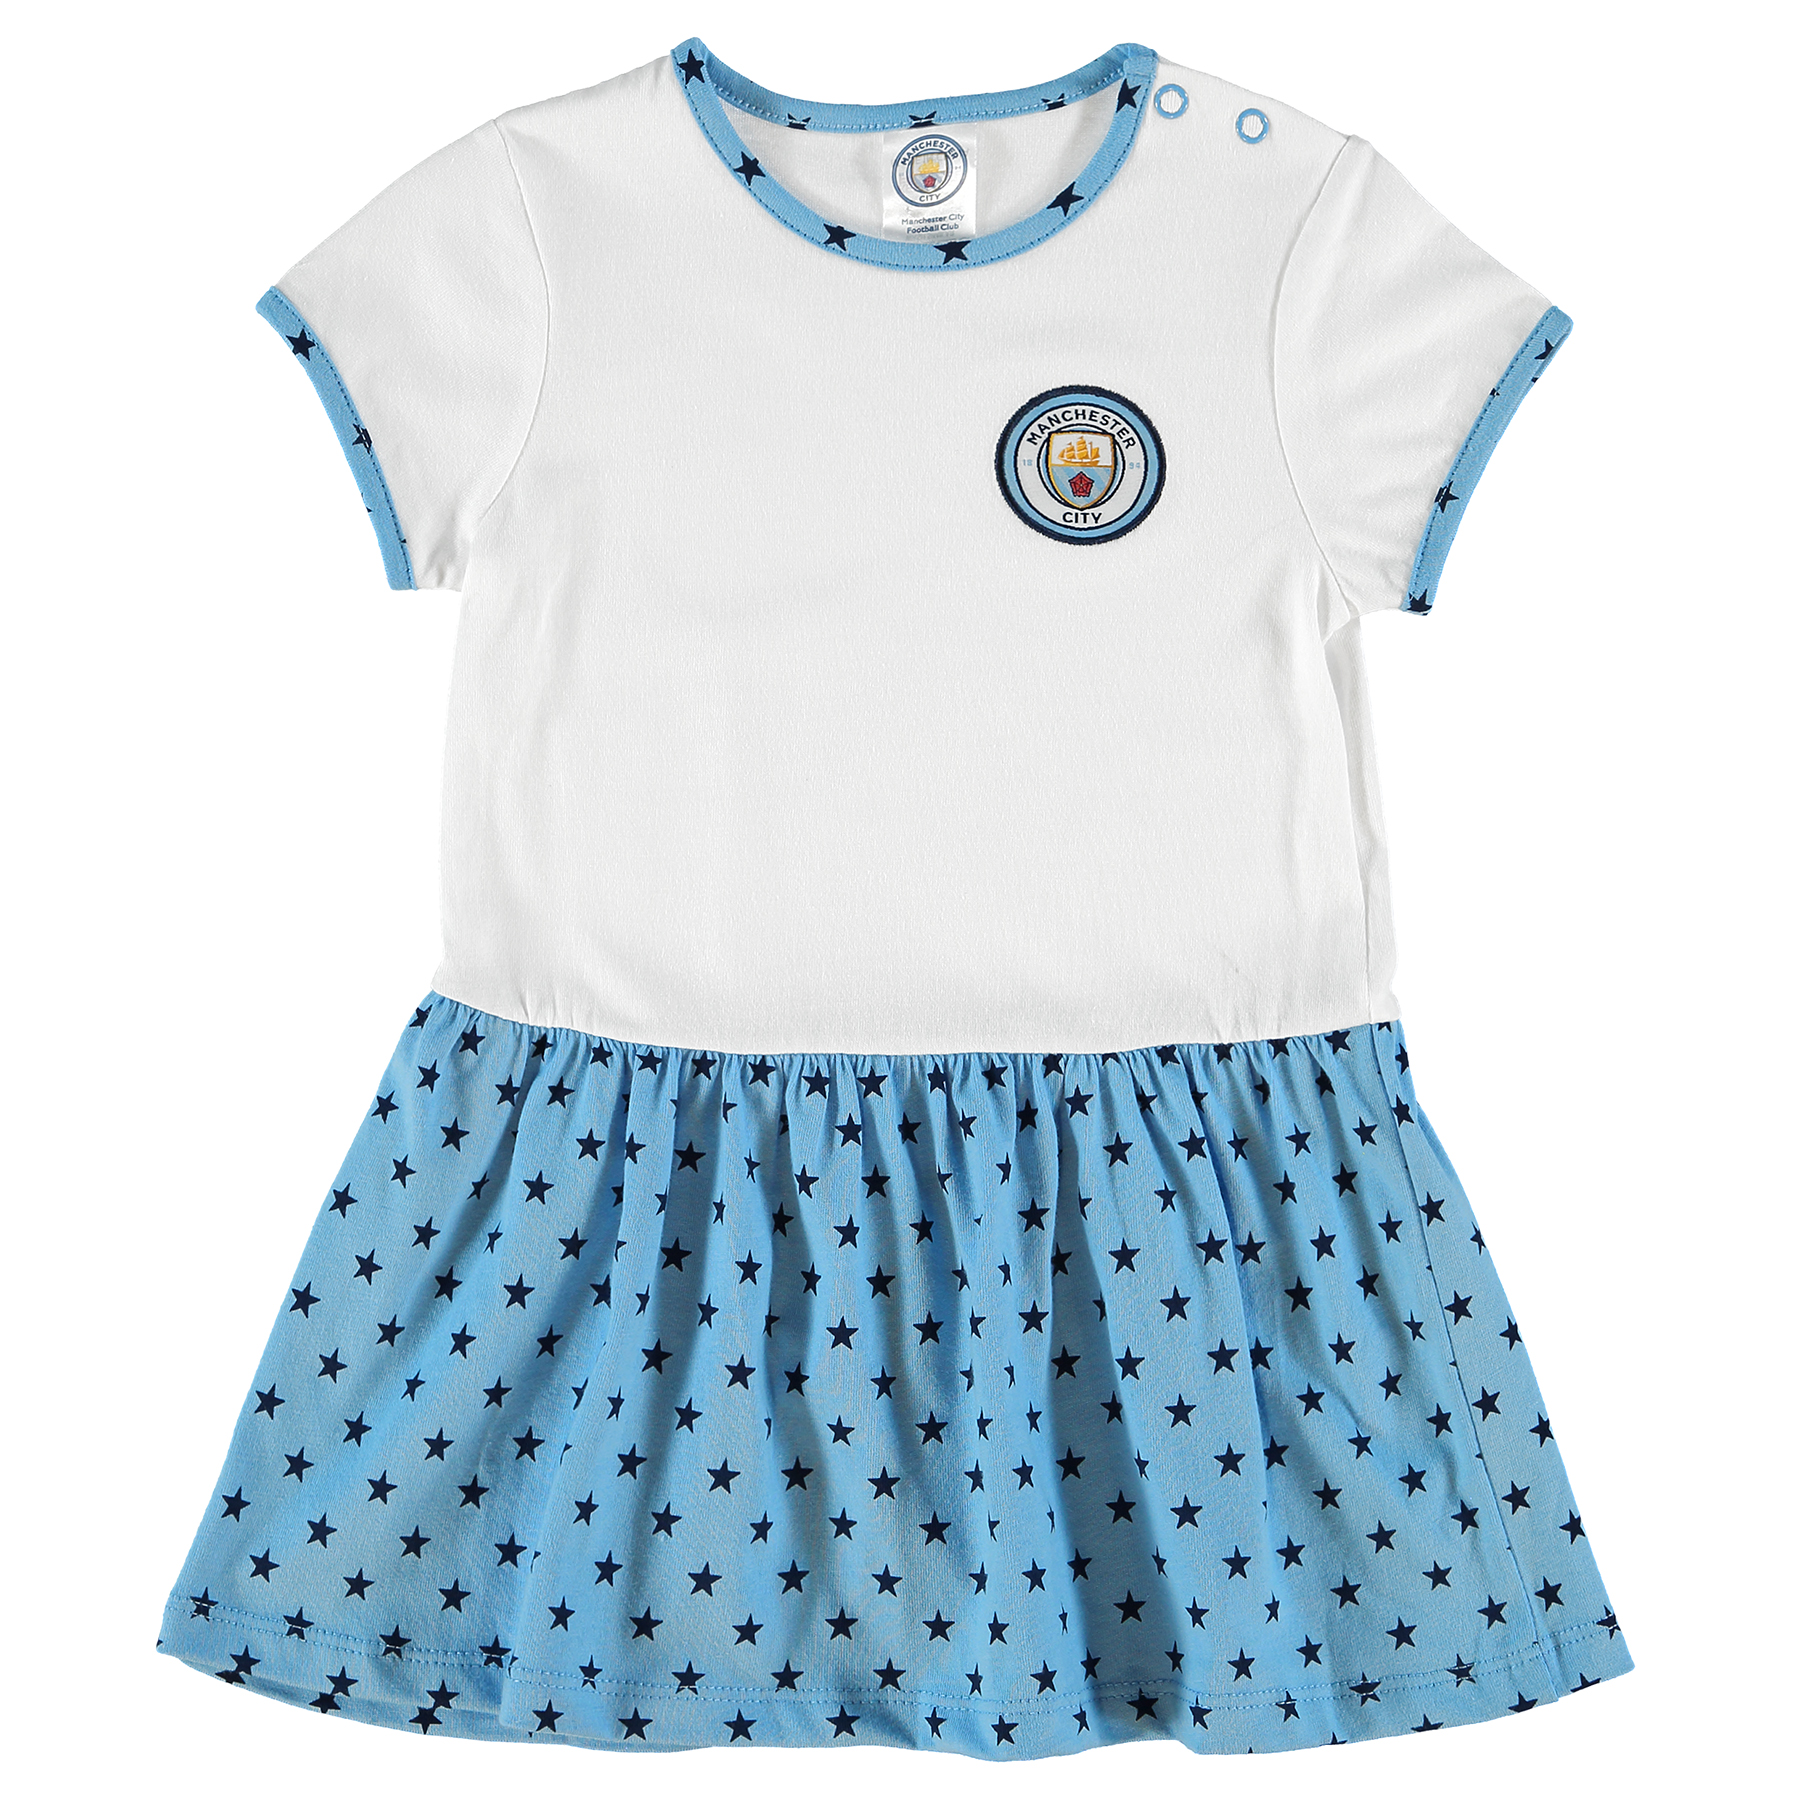 Manchester City Crest Dress - Sky/White - Baby